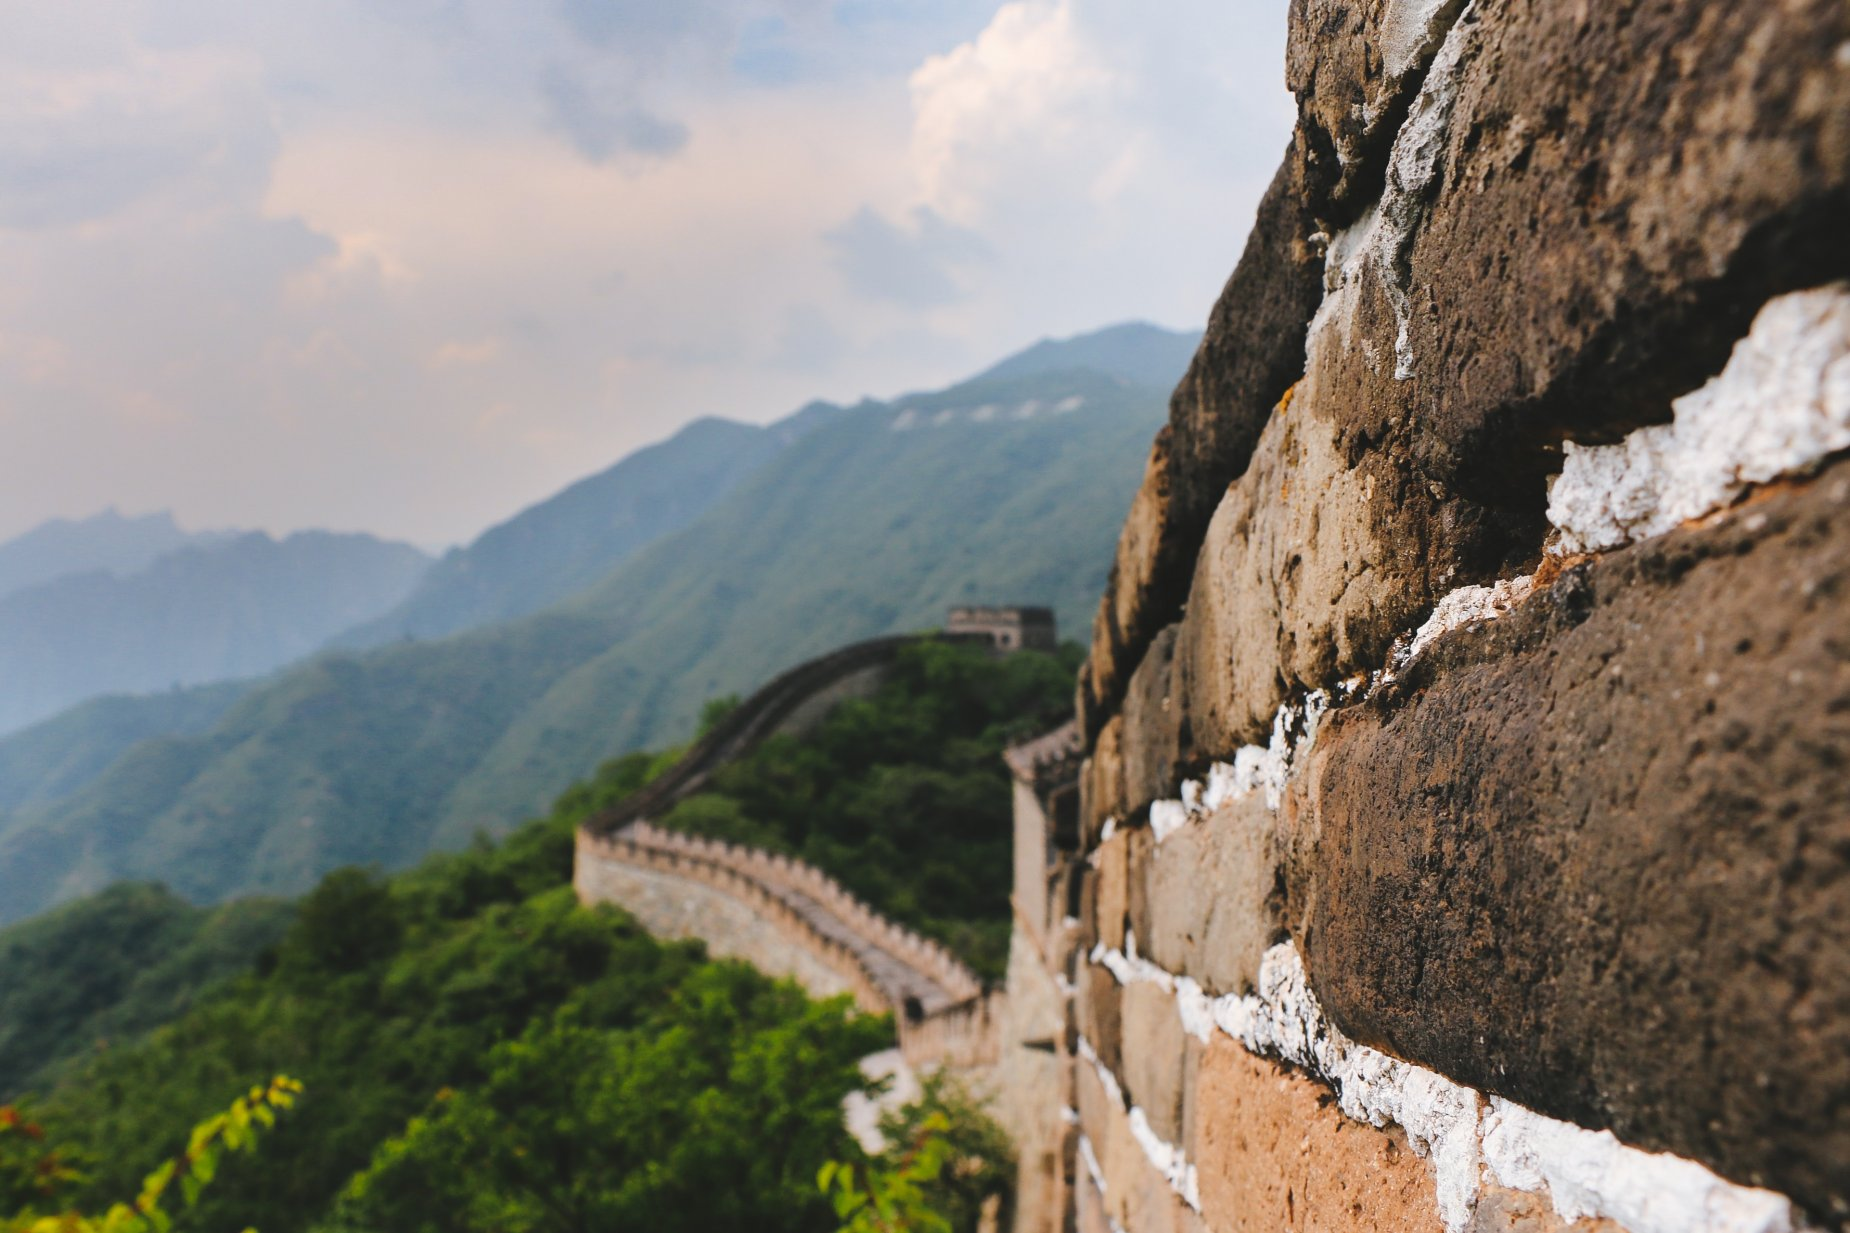 One of the sections of the Great Wall